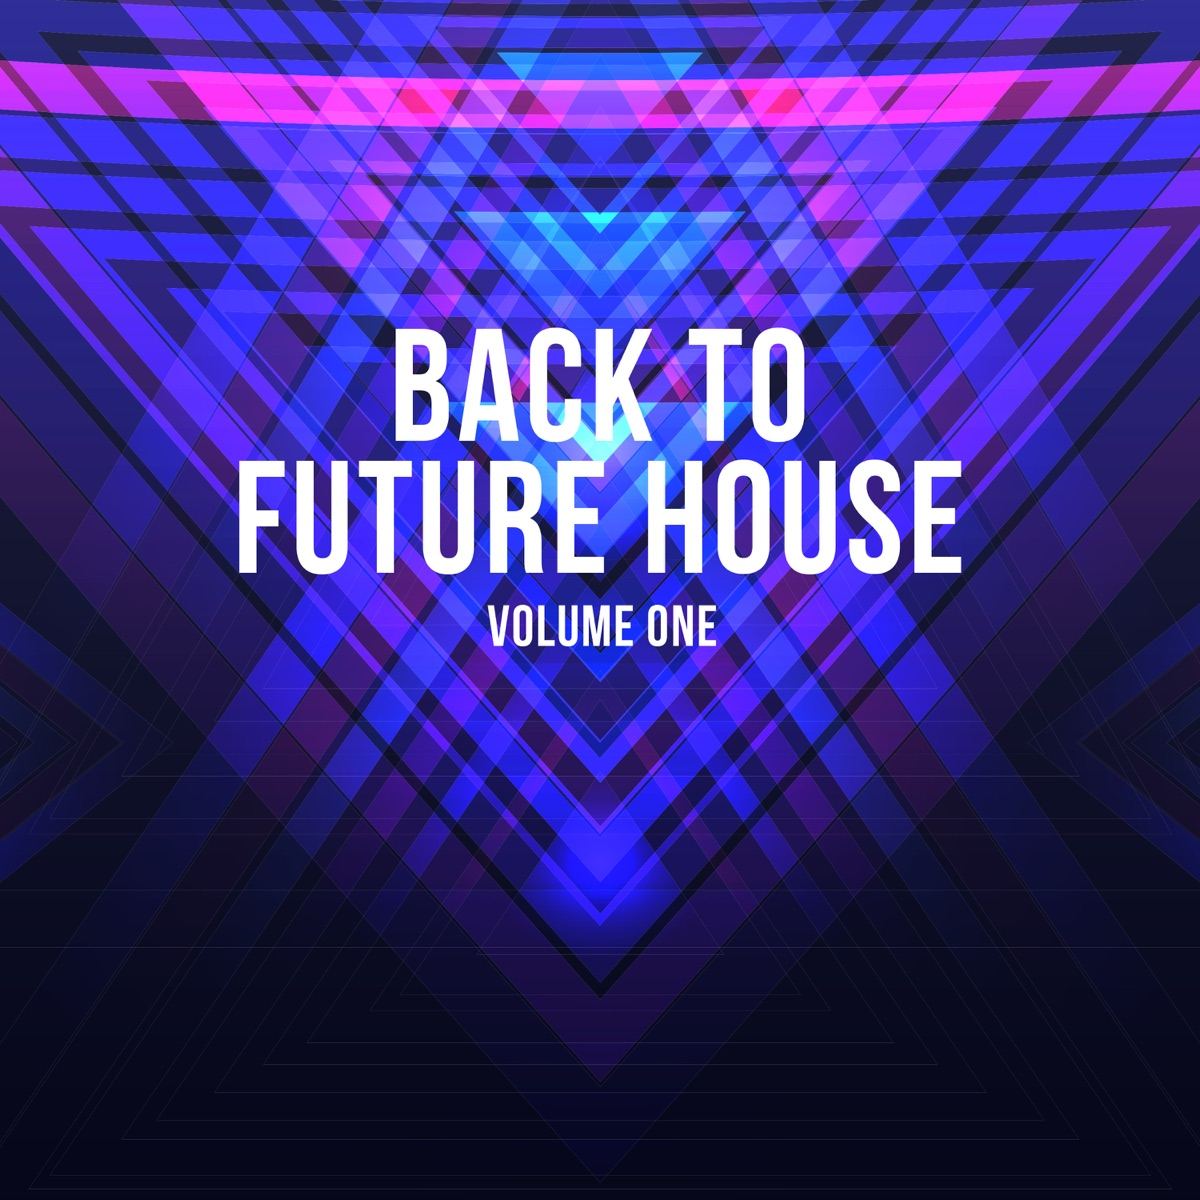 Back to Future House Vol 1 Various Artists CD cover